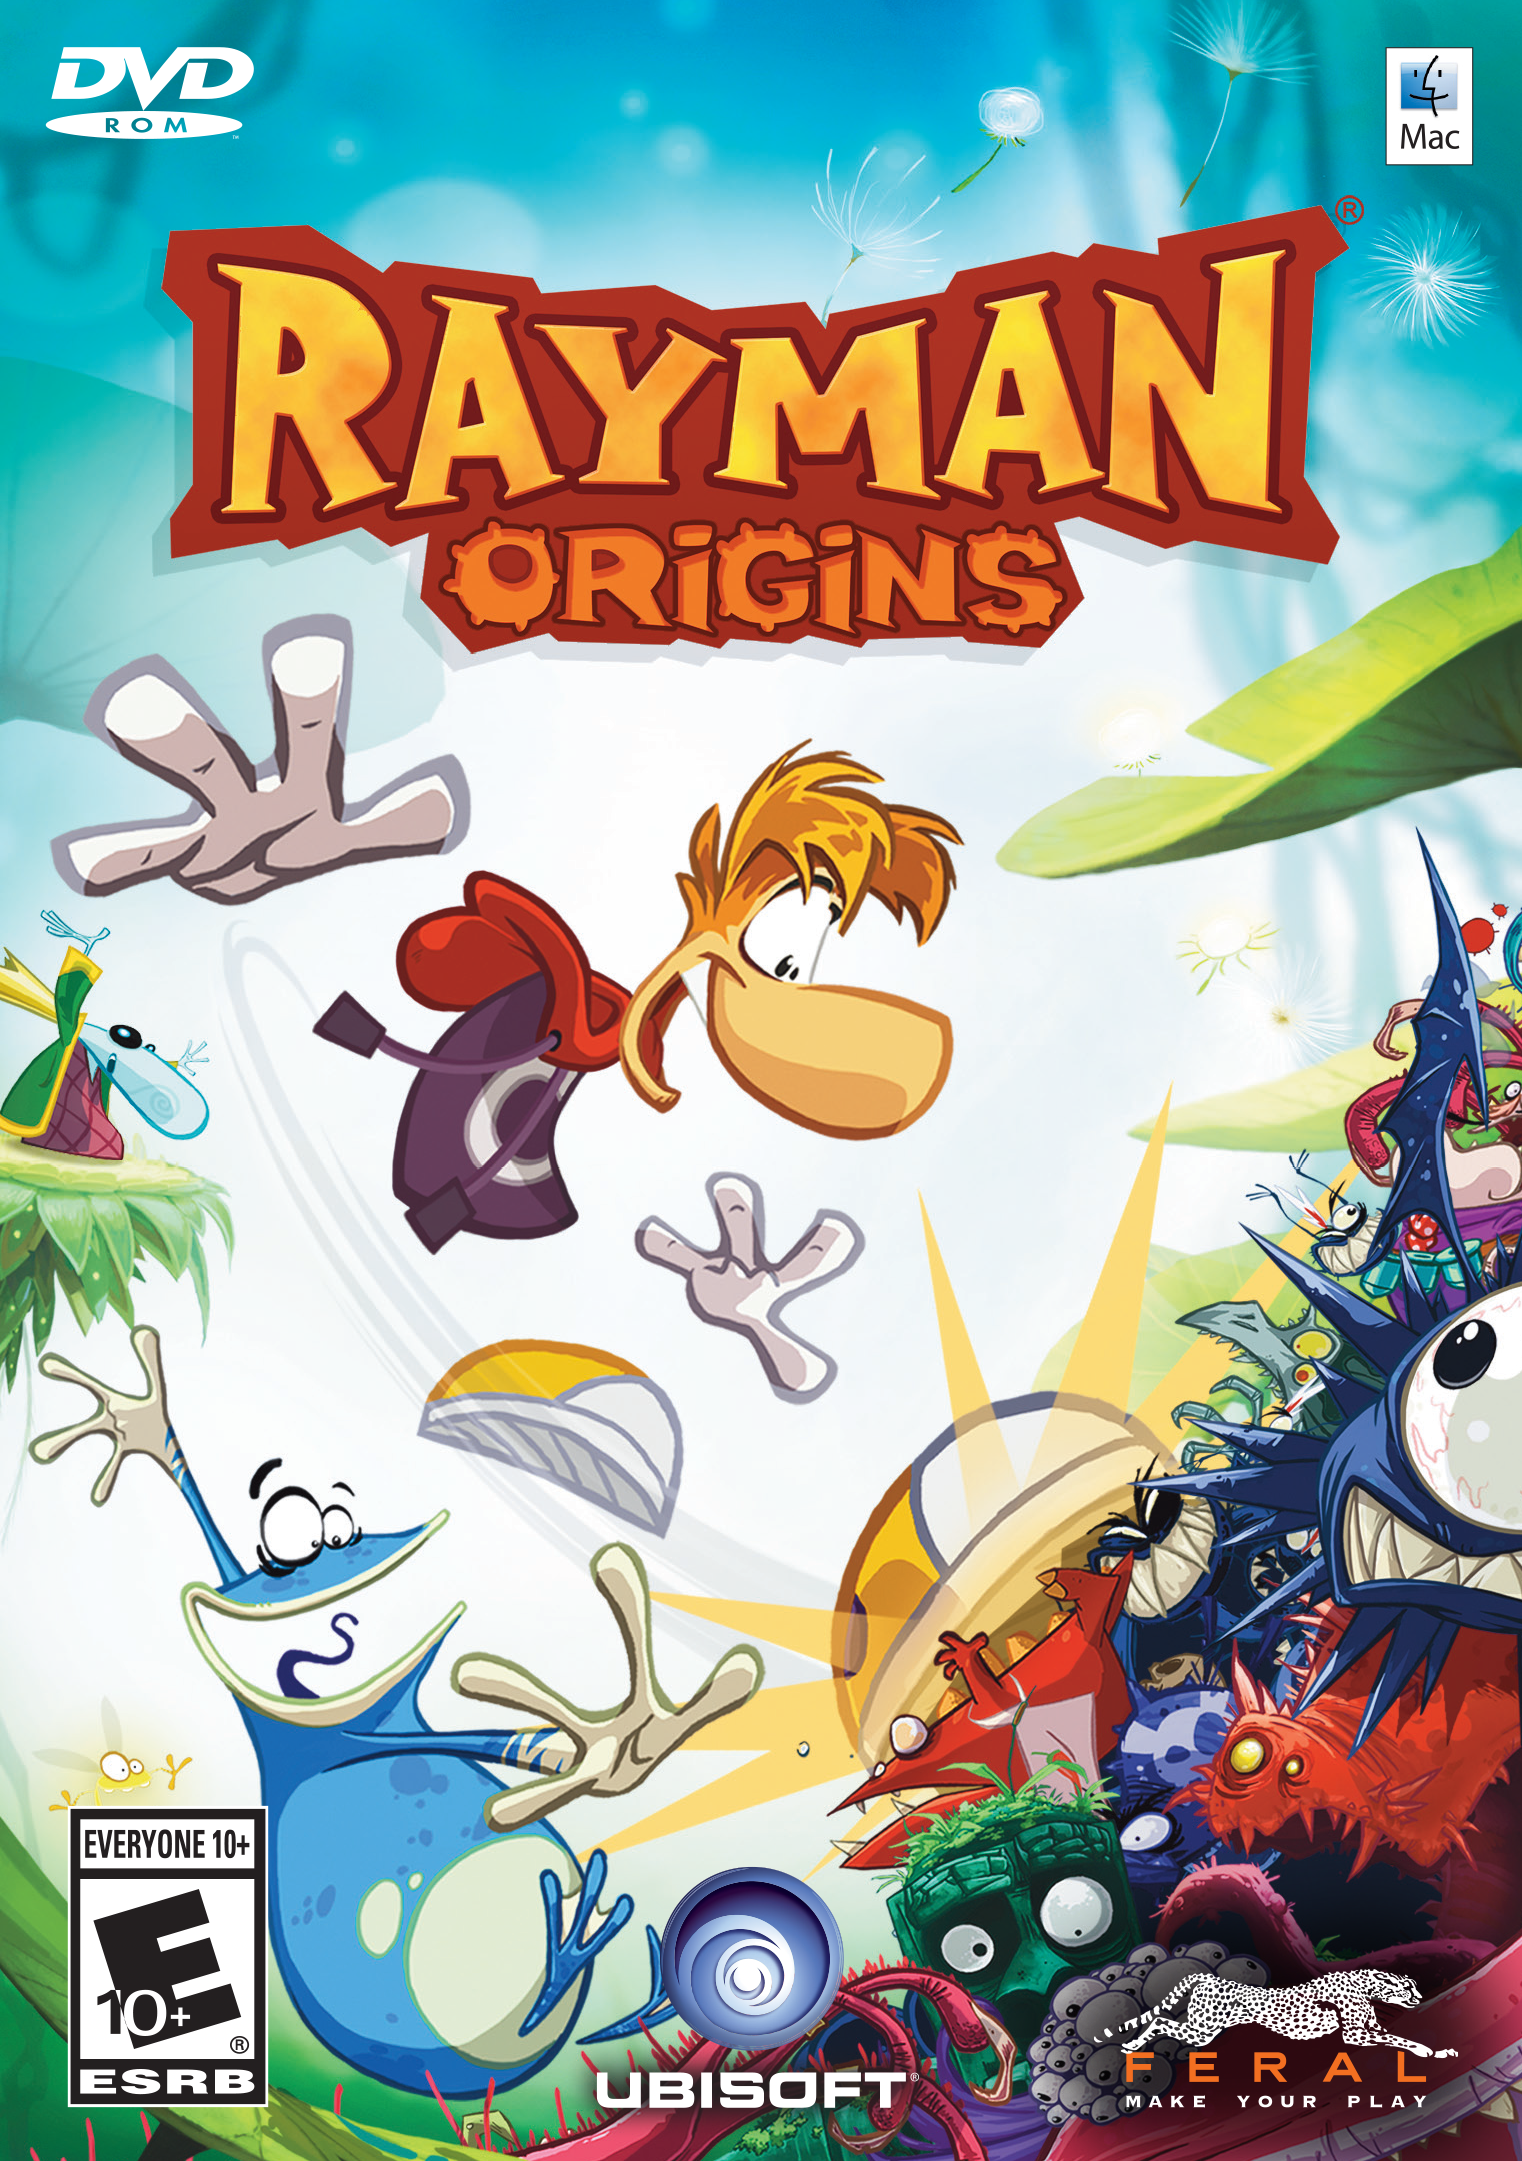 Rayman Origins (Mac) [Online Game Code] (Players Cue Series Classic)